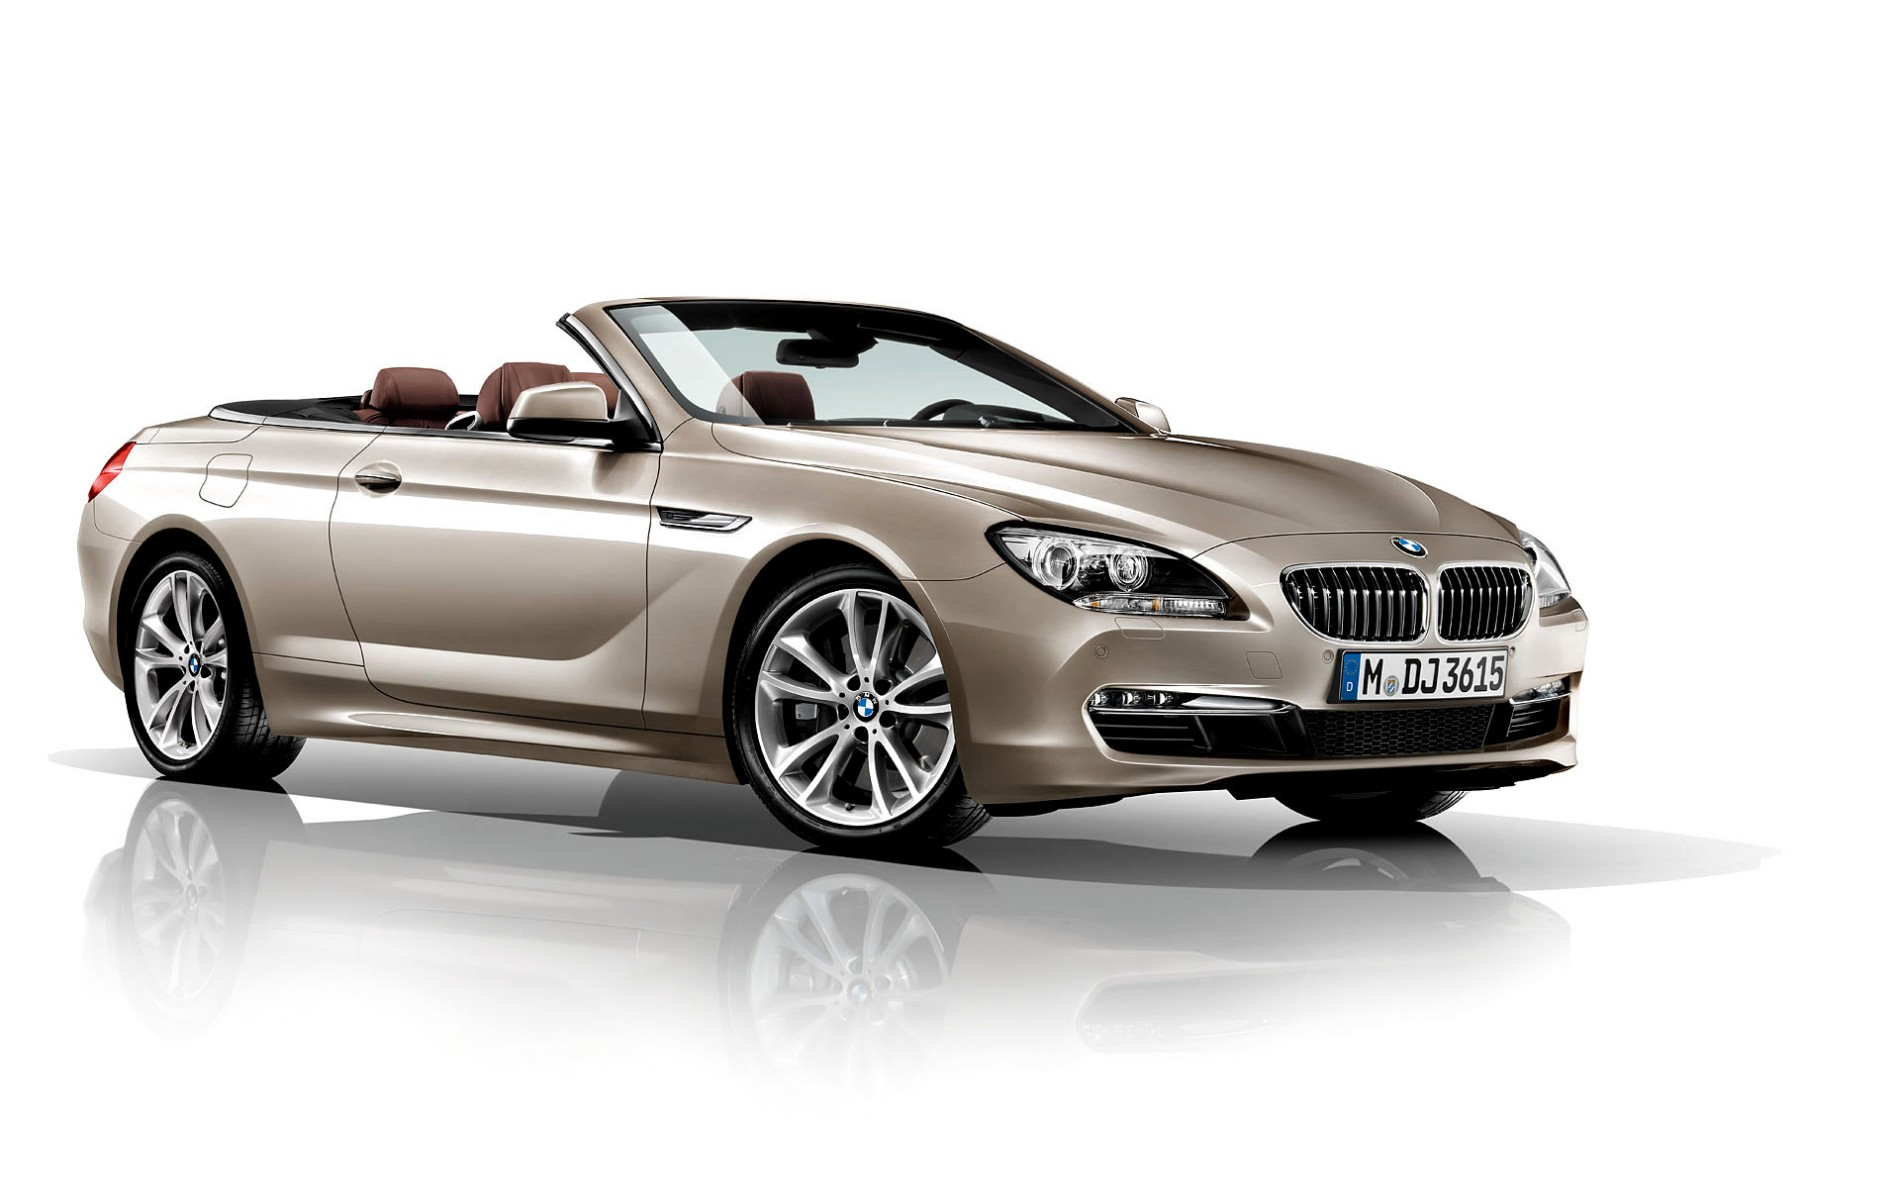 PreOwned Convertible Cars For Sale in Alexandria VA  Car Smart Now